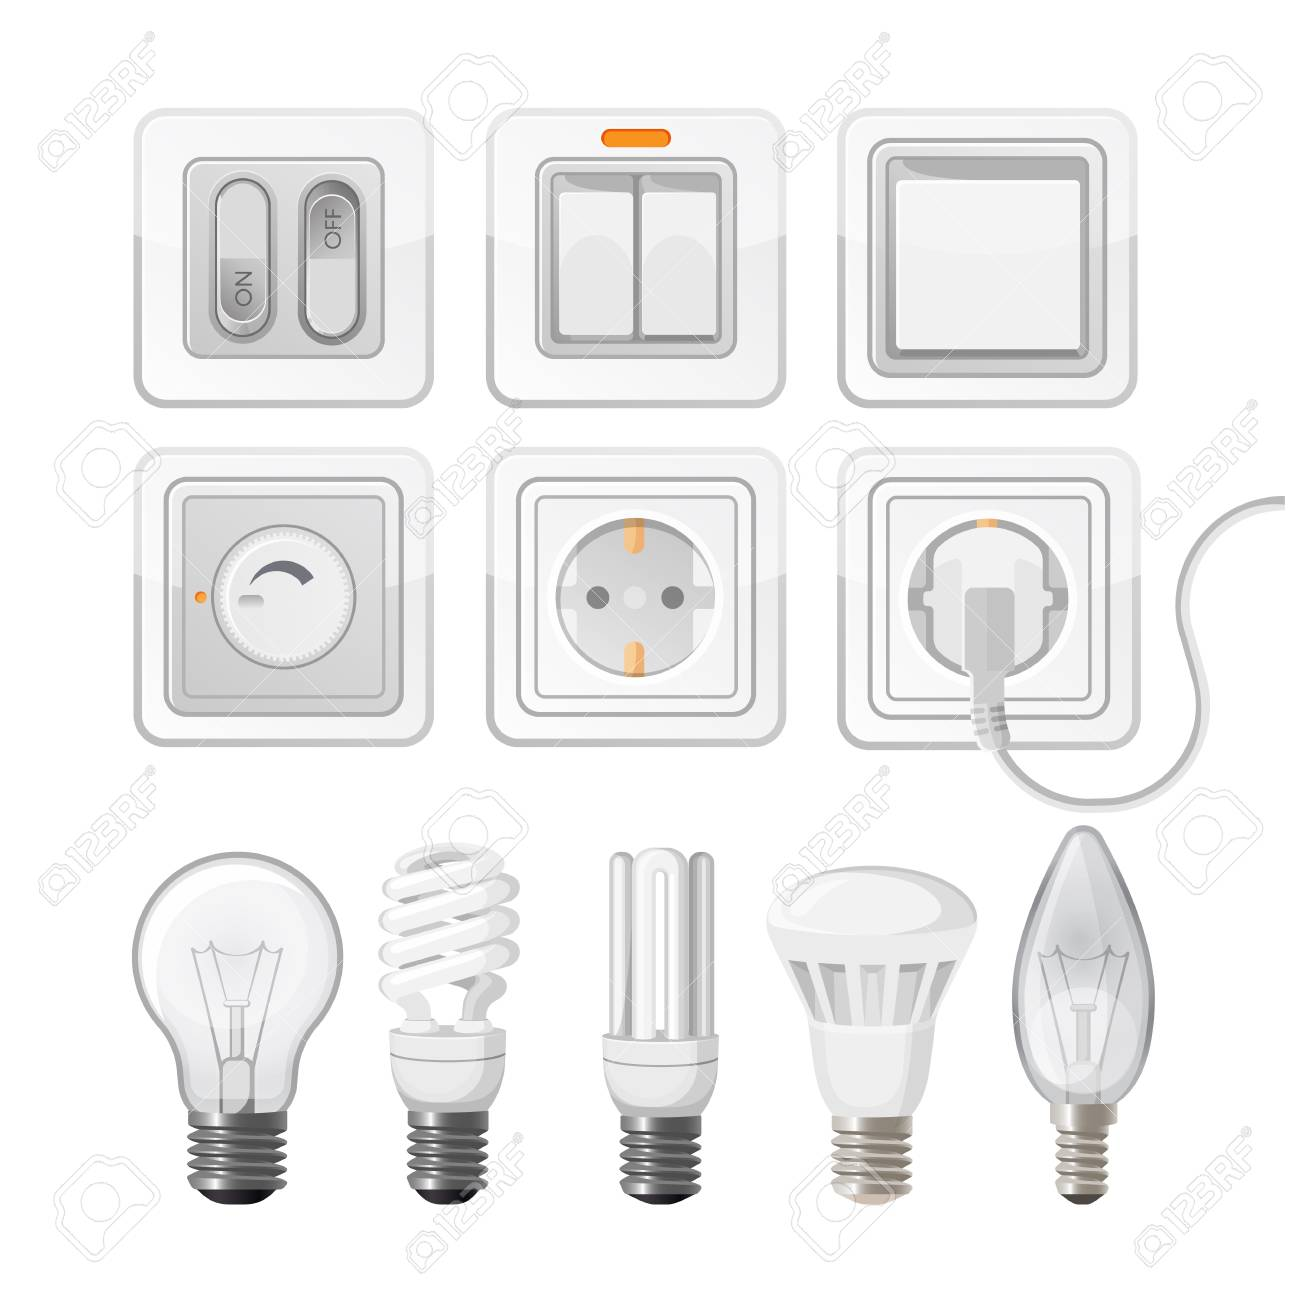 Set Of Light Saving Bulbs, Electric Switches, Plastic Dimmers ...